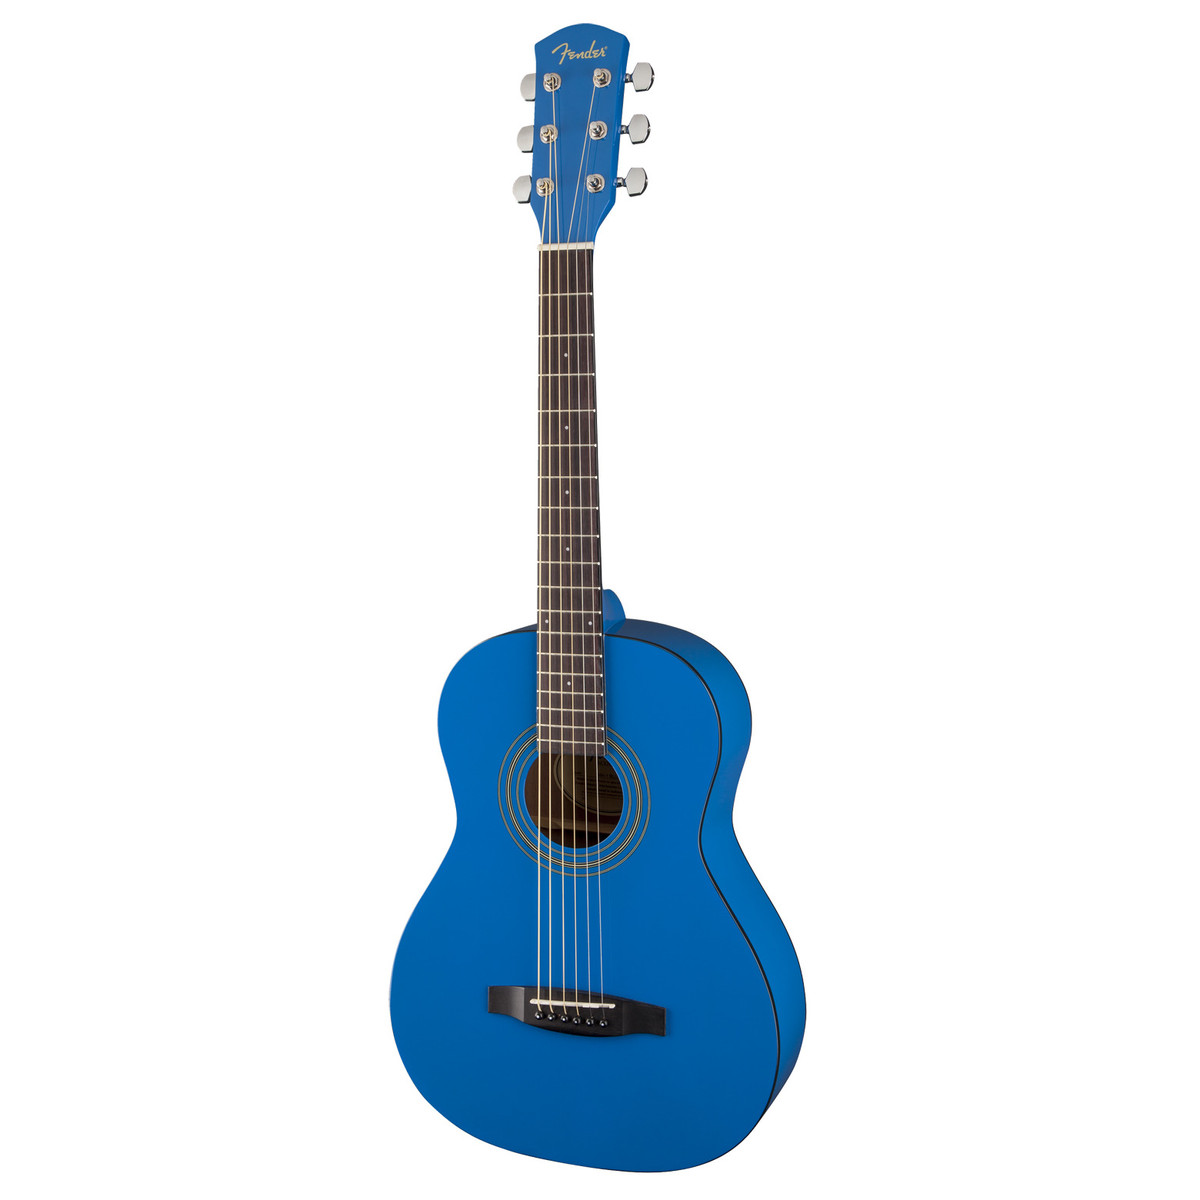 Fender MA 1 3 4 Acoustic Guitar Gloss Blue Loading Zoom